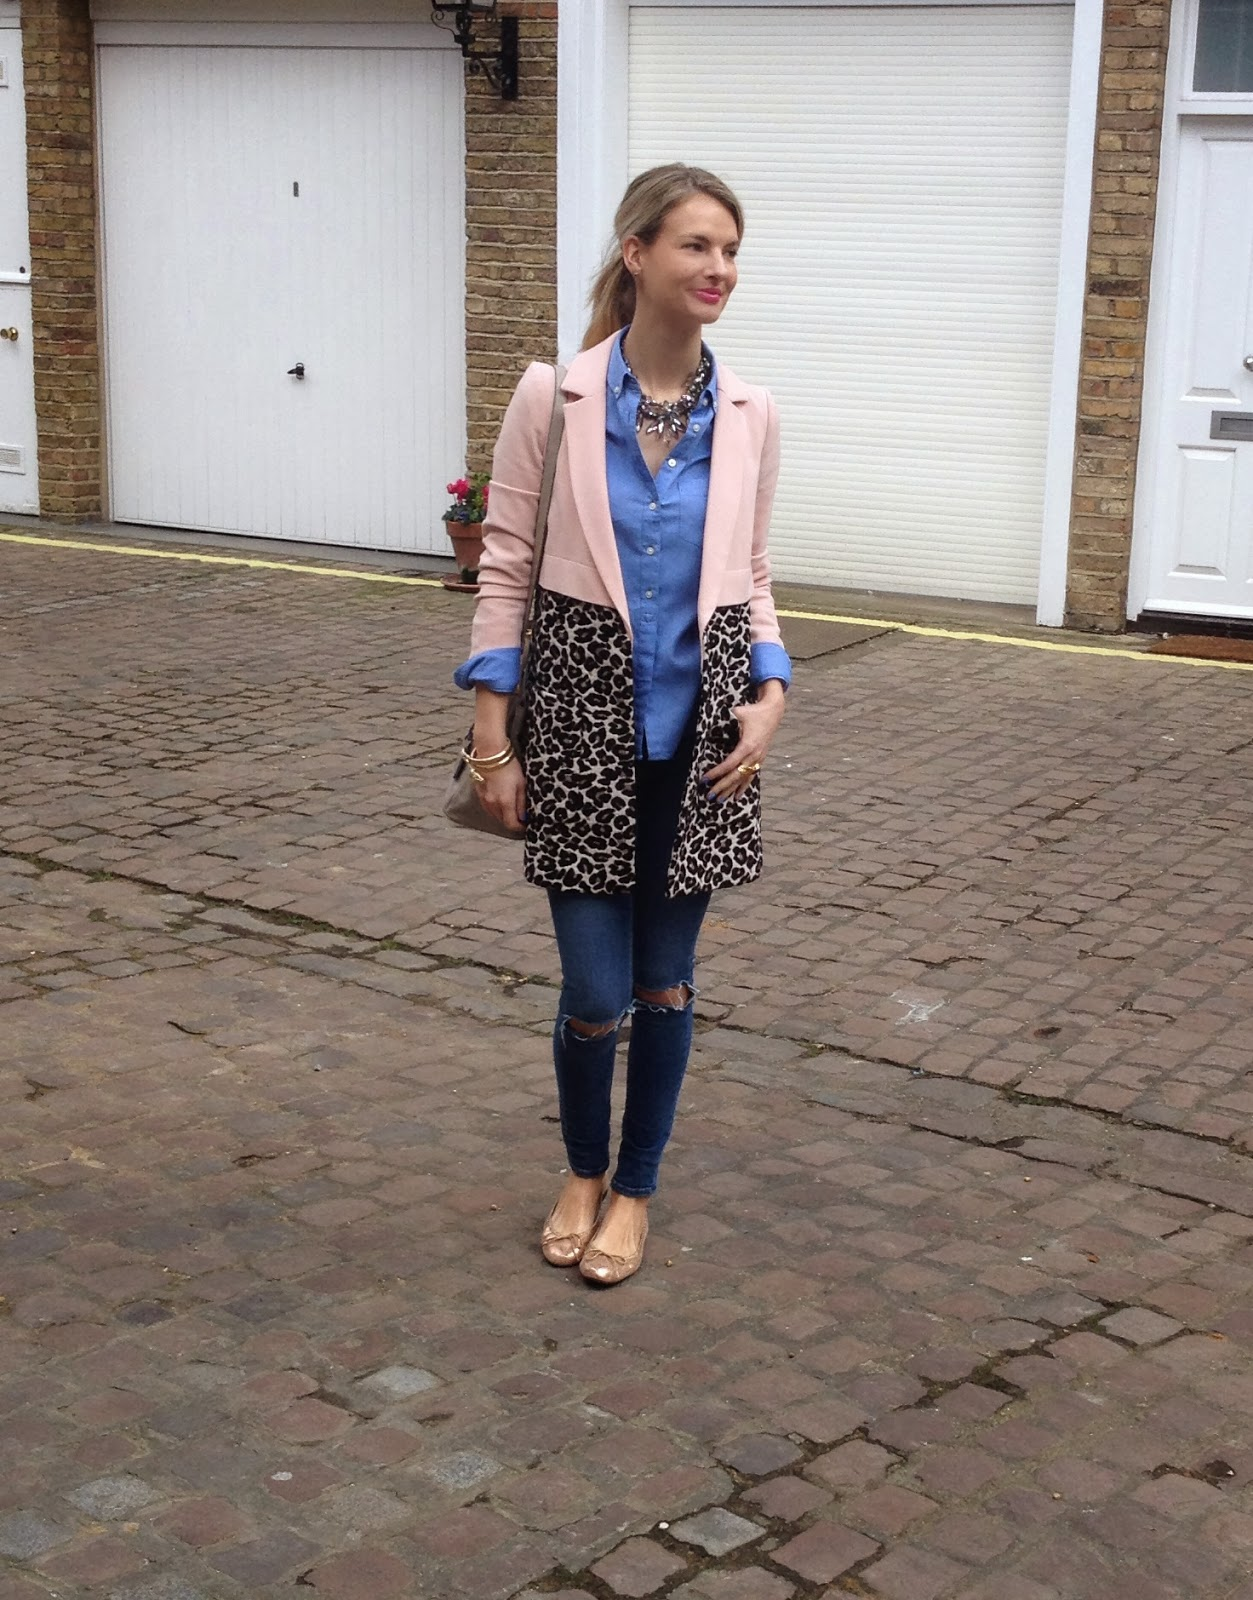 zara necklace, coat, spring coat, river island, river island coat, leopard print coat, pink leopard print coat, french sole, french sole flats, ballet slipper, london sole, french sole henrietta, jeans on jeans